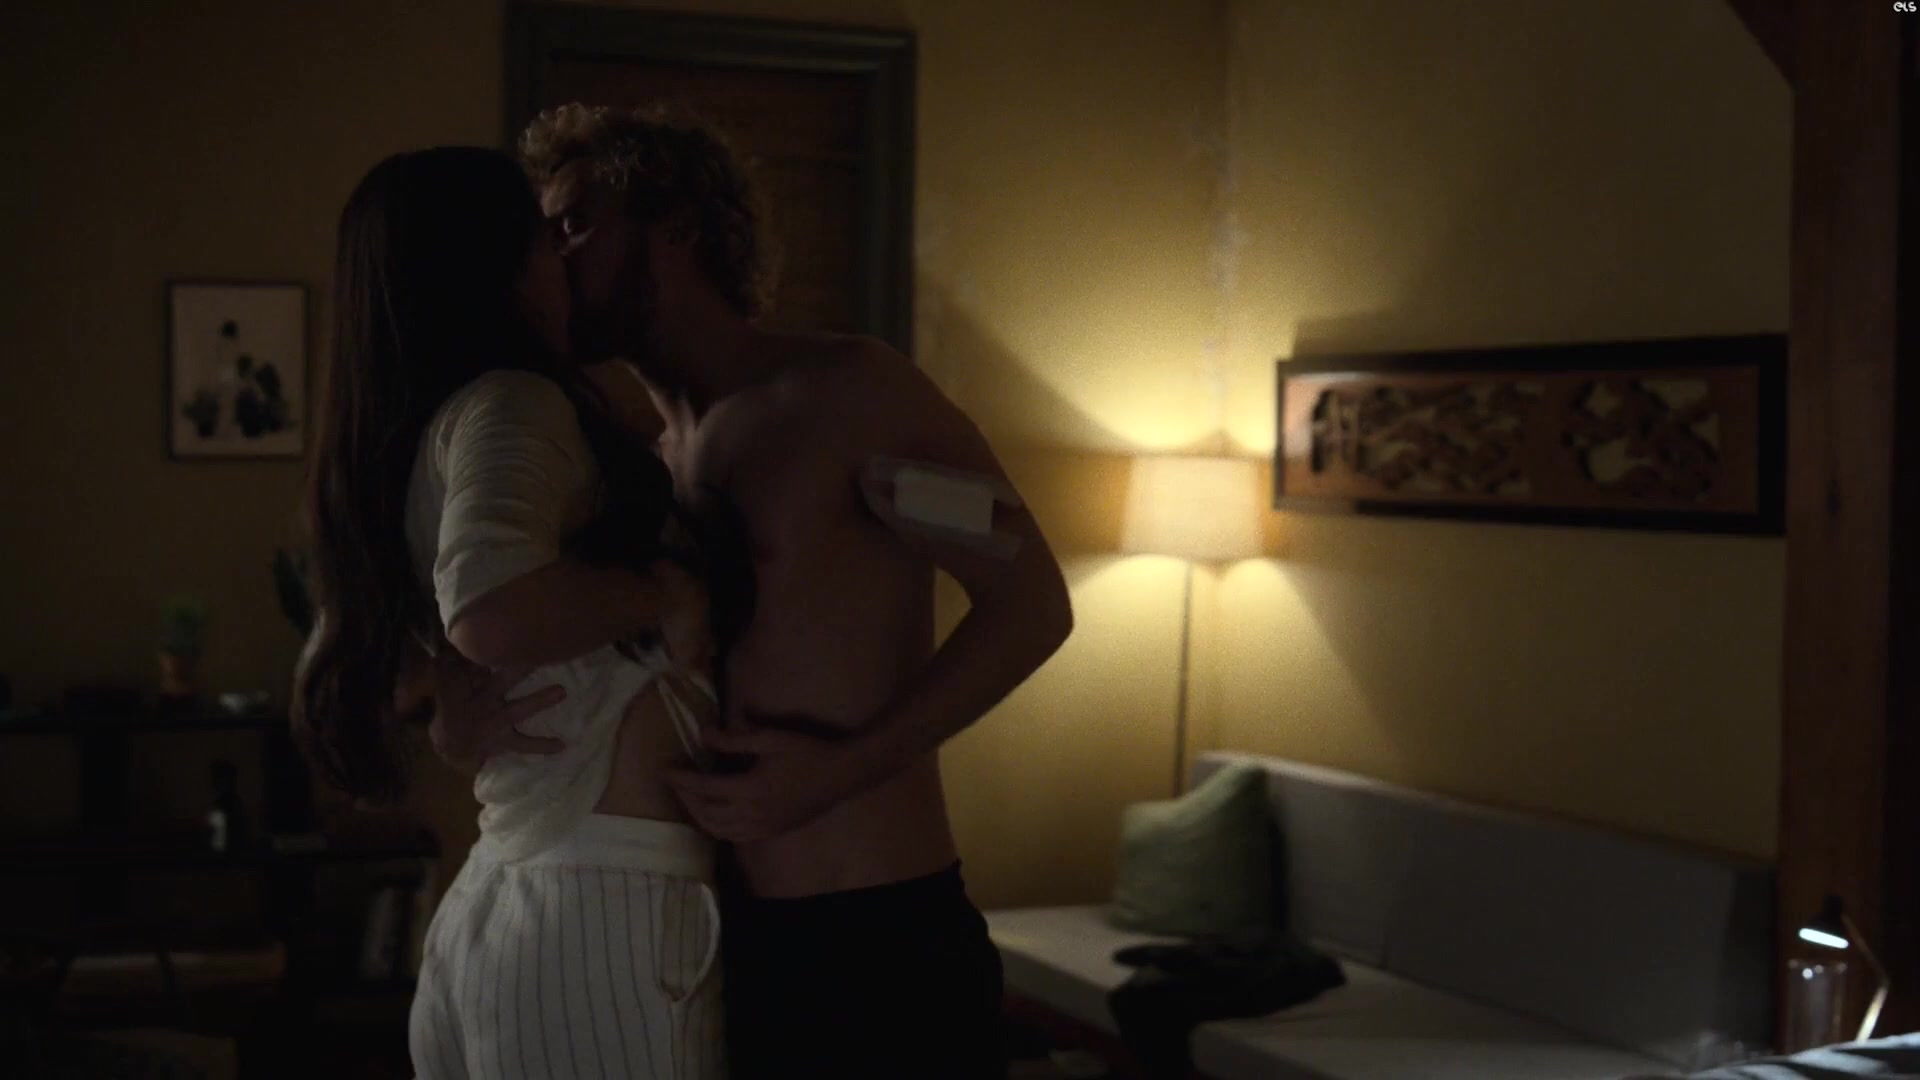 Iron Fist S01E07 (2017) – Jessica Henwick Nude Scene Video